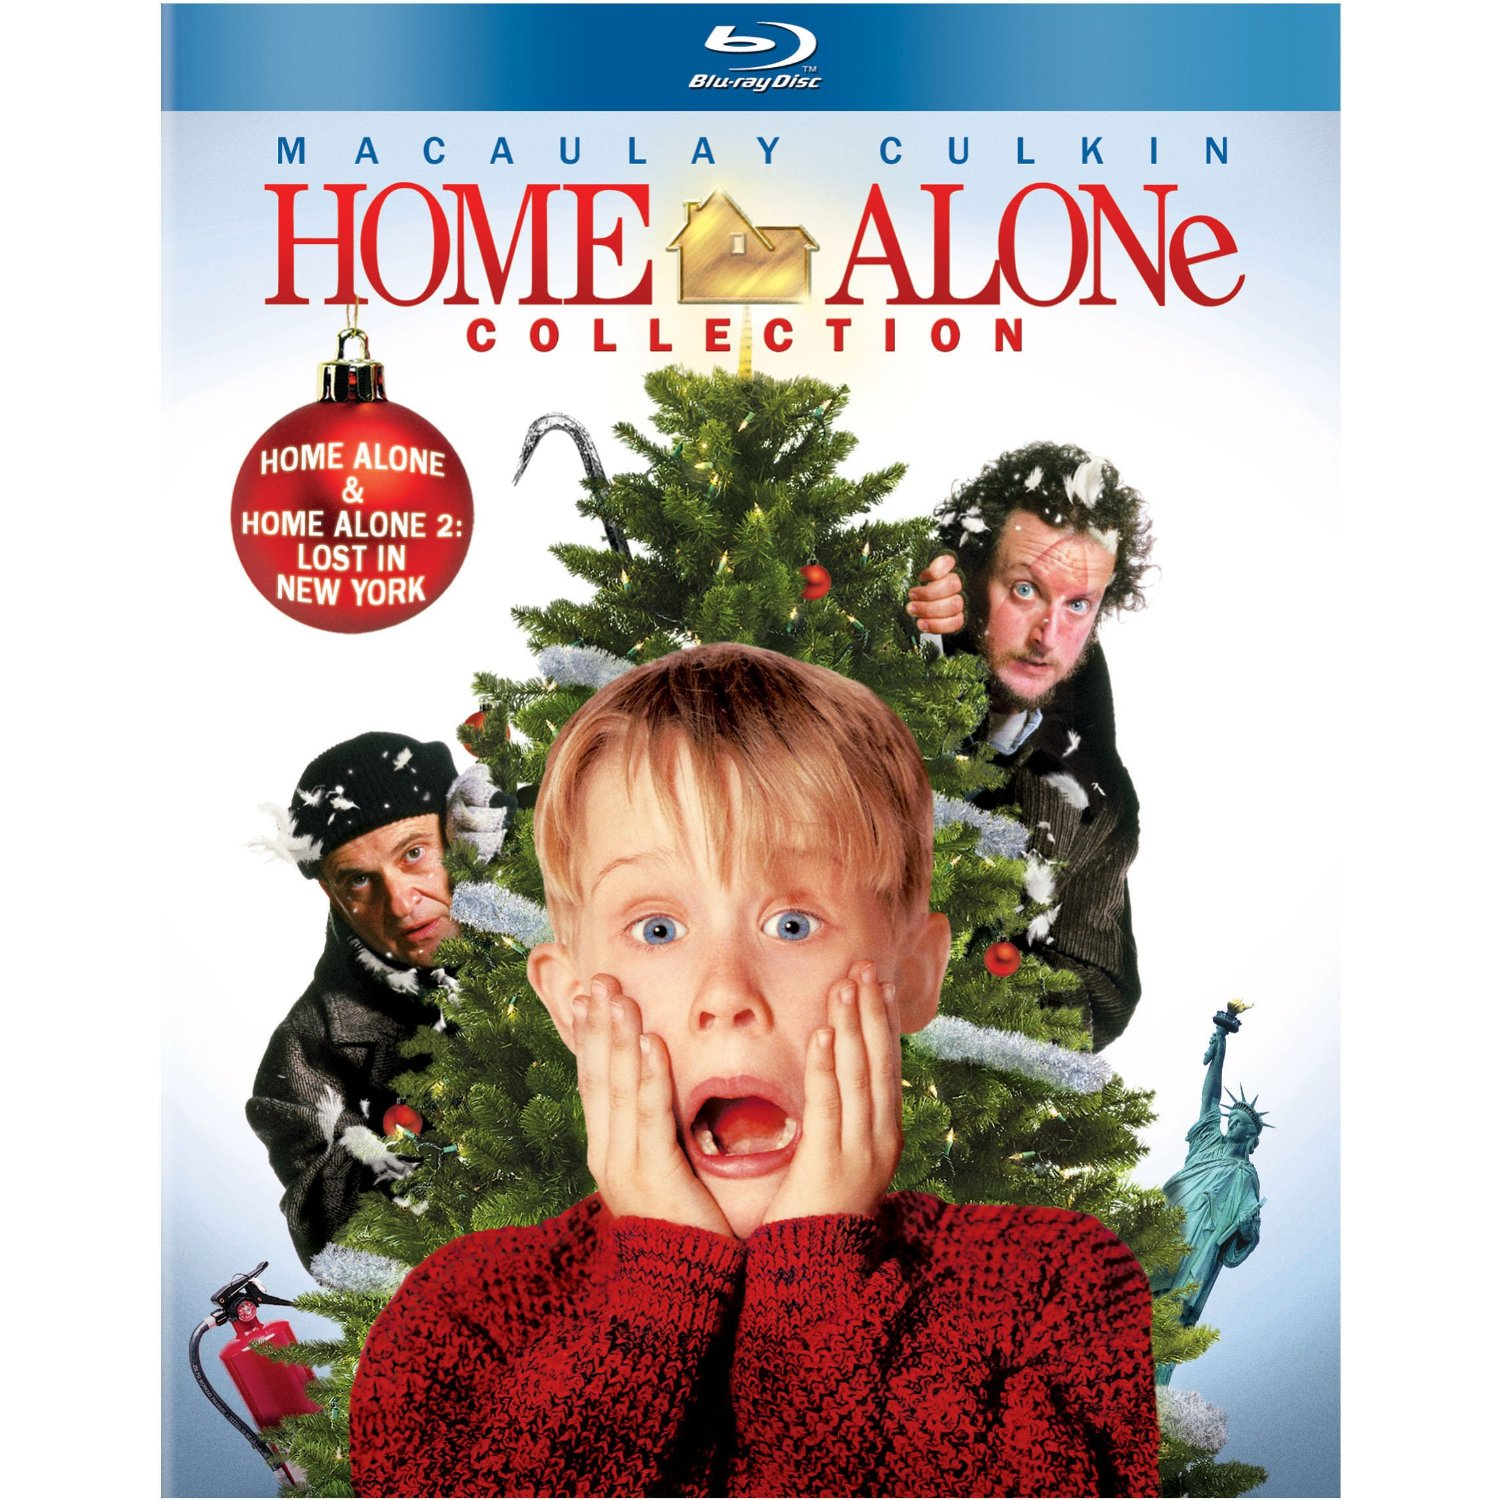 Home Alone 1&2 Blu-ray Only $11.99 Shipped!